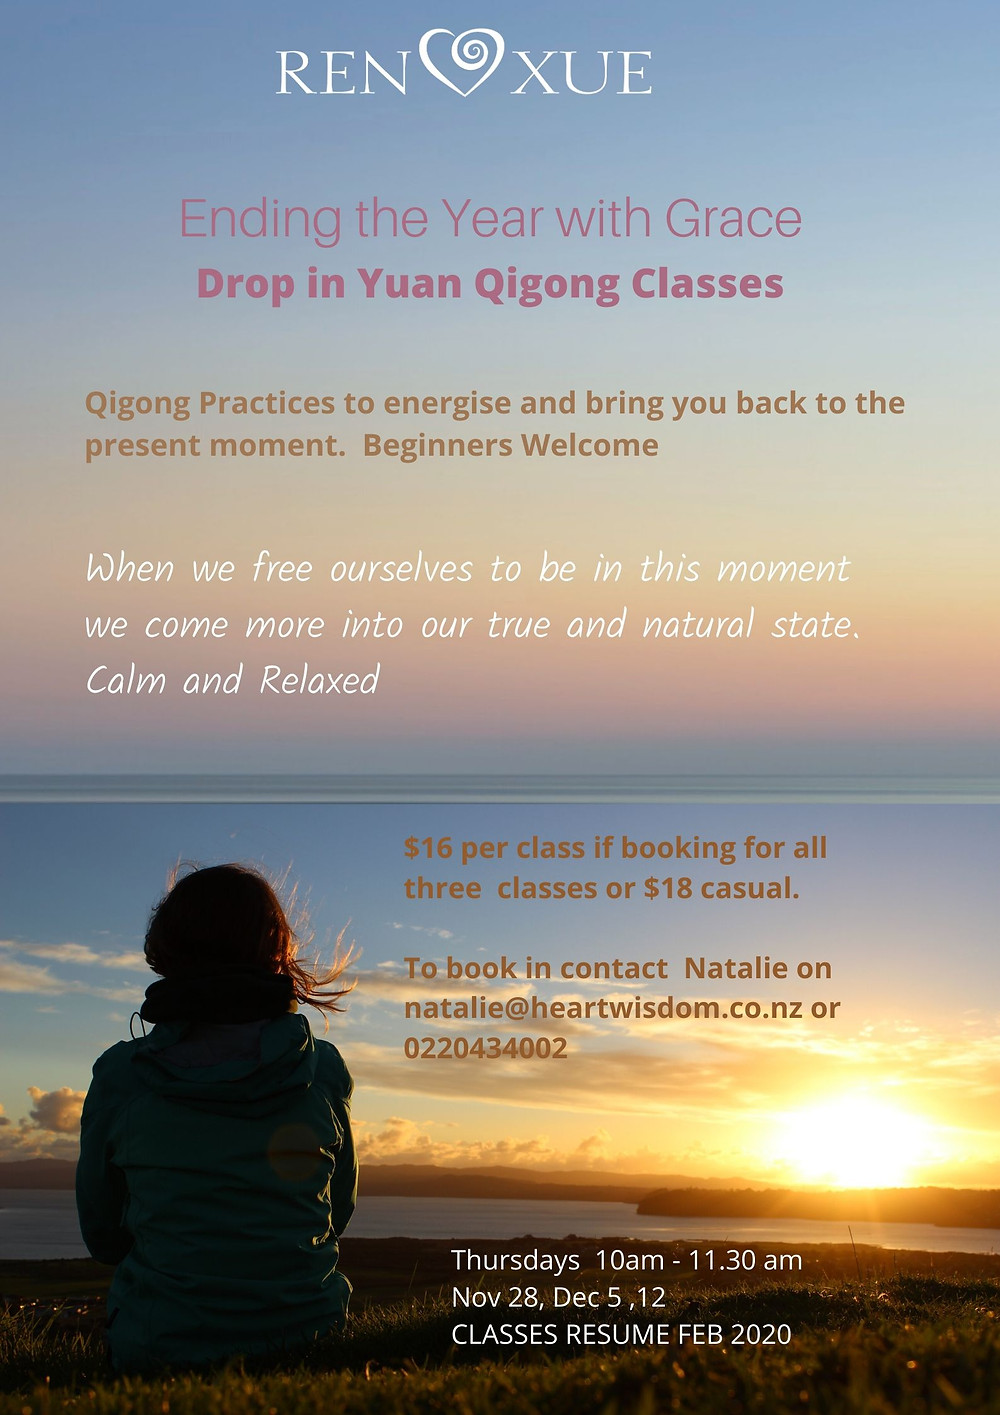 Yuan Qigong Drop In Classes at Riverside Poster